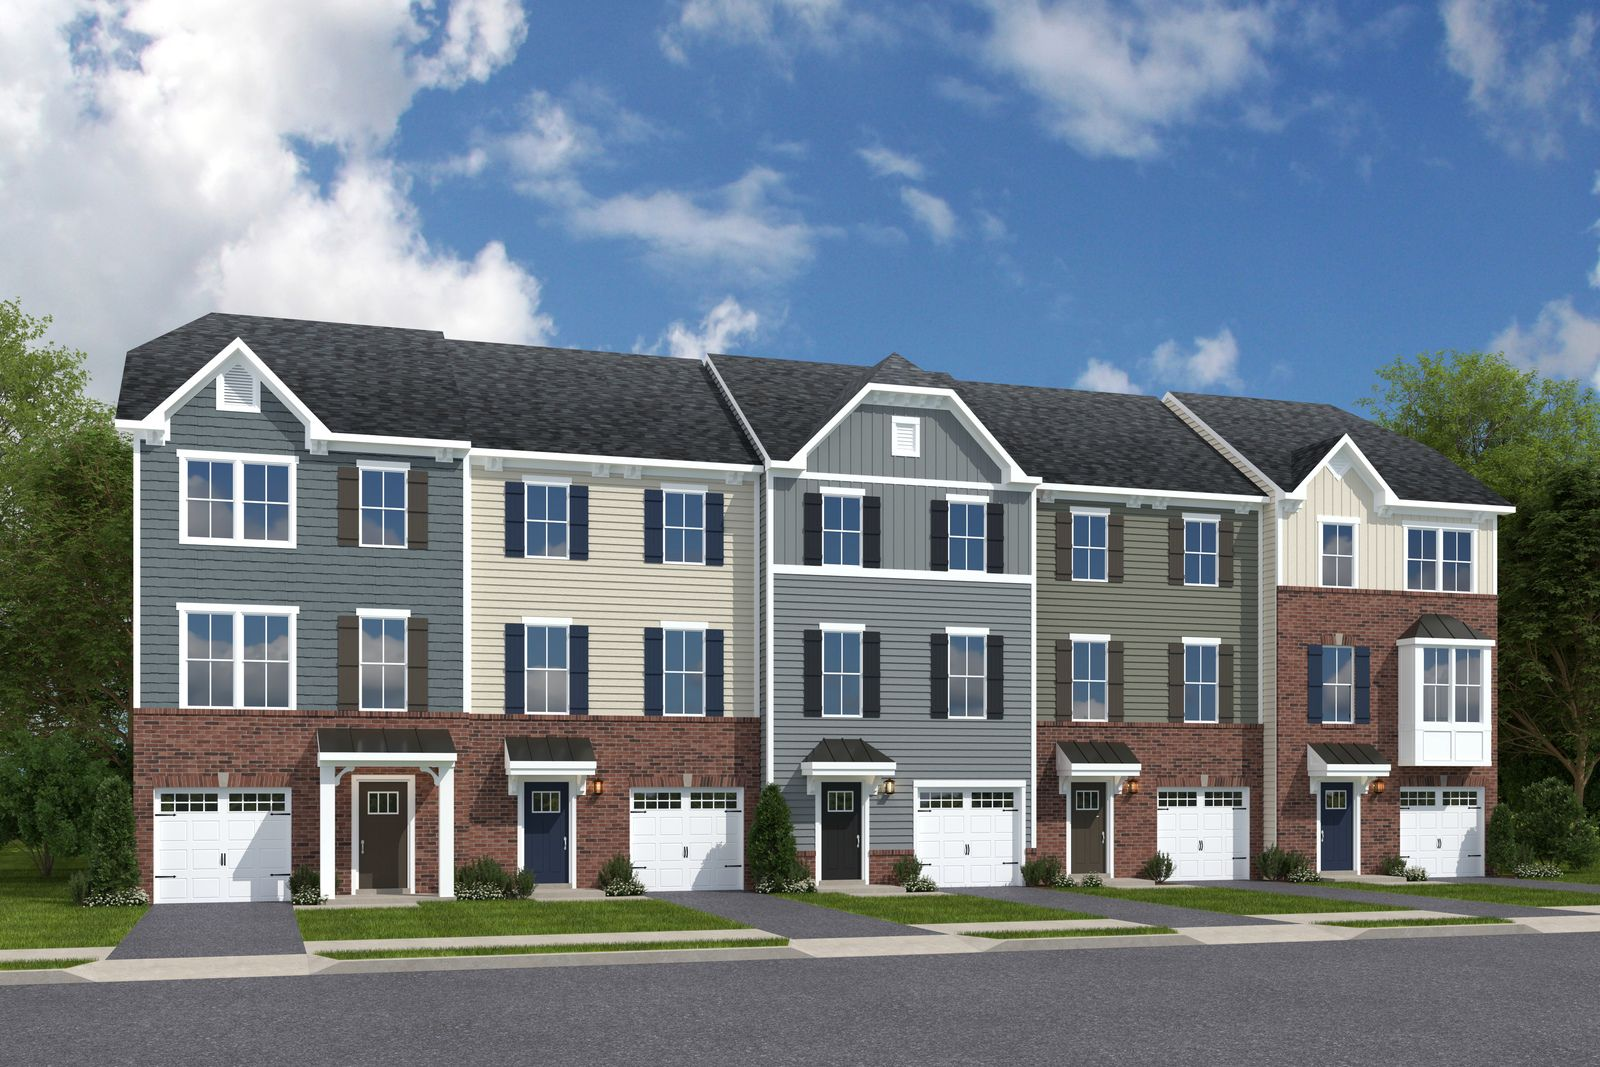 BECOME A VIP AT JAMES RUN!:Join our VIP list todayfor the first opportunity to get exclusive details and purchase your new home atJames Run Townhomes!